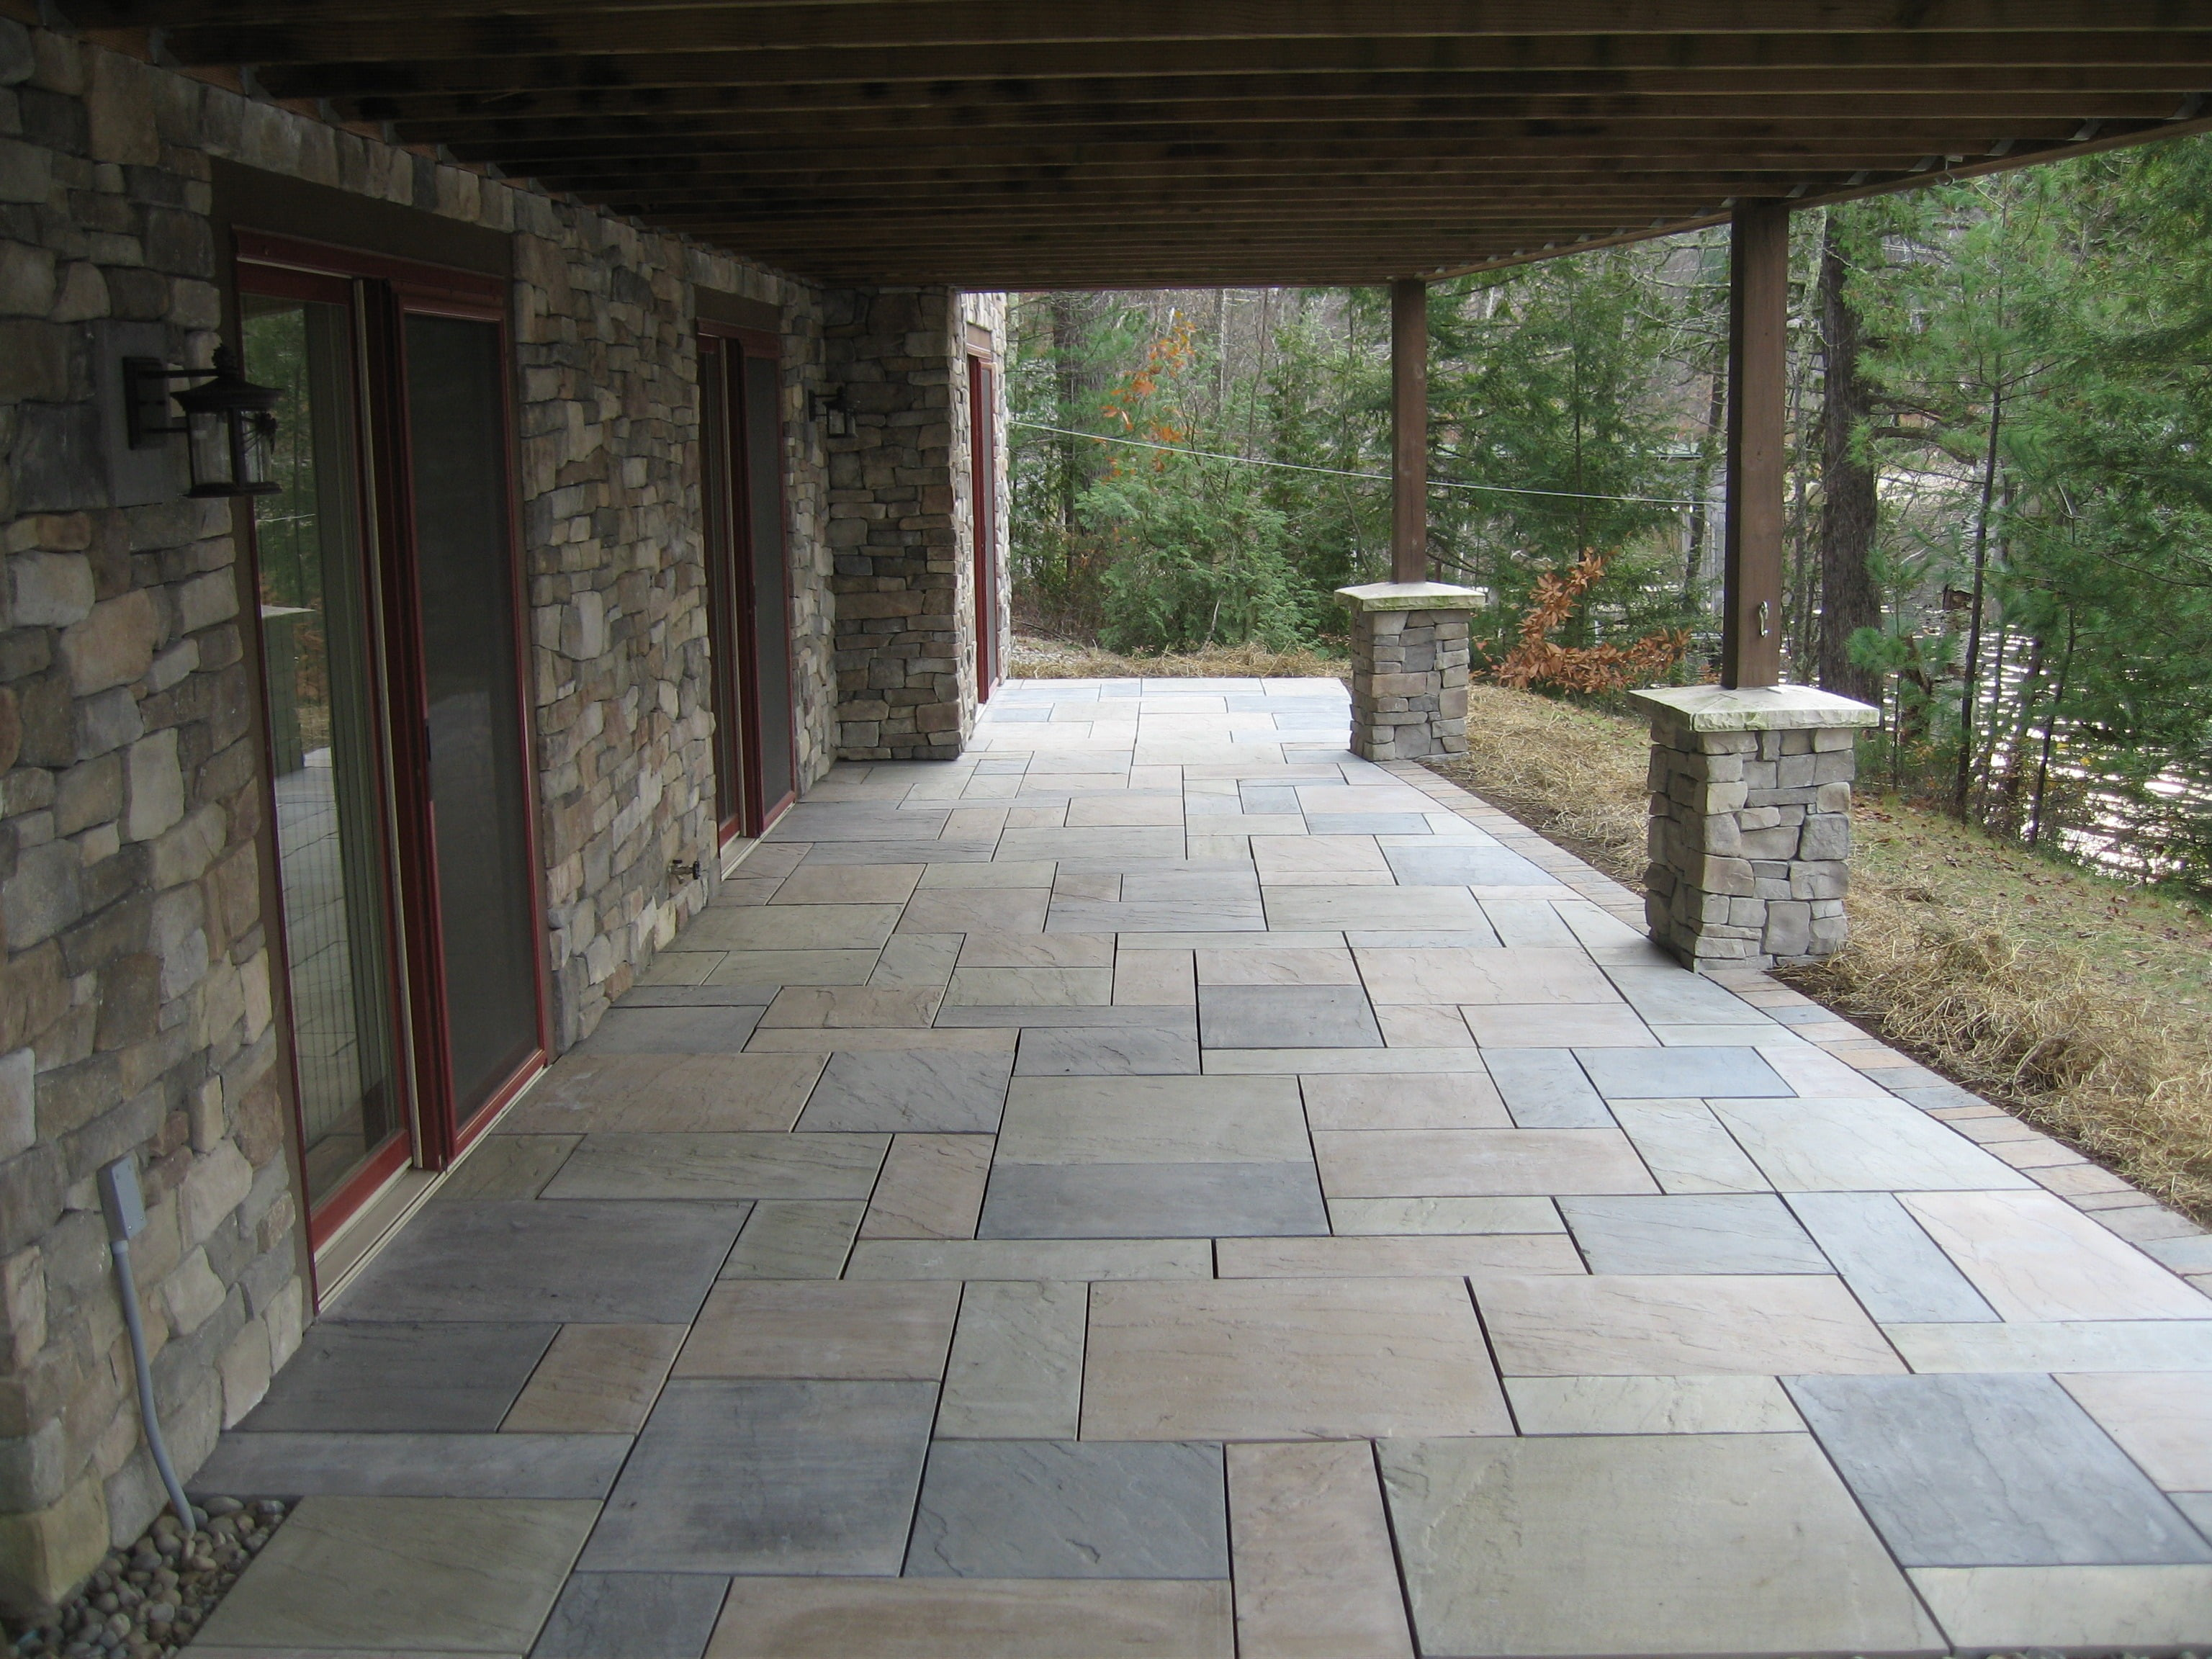 How To Pick The Best Pavers For Your Patio A Cut Lawn Care